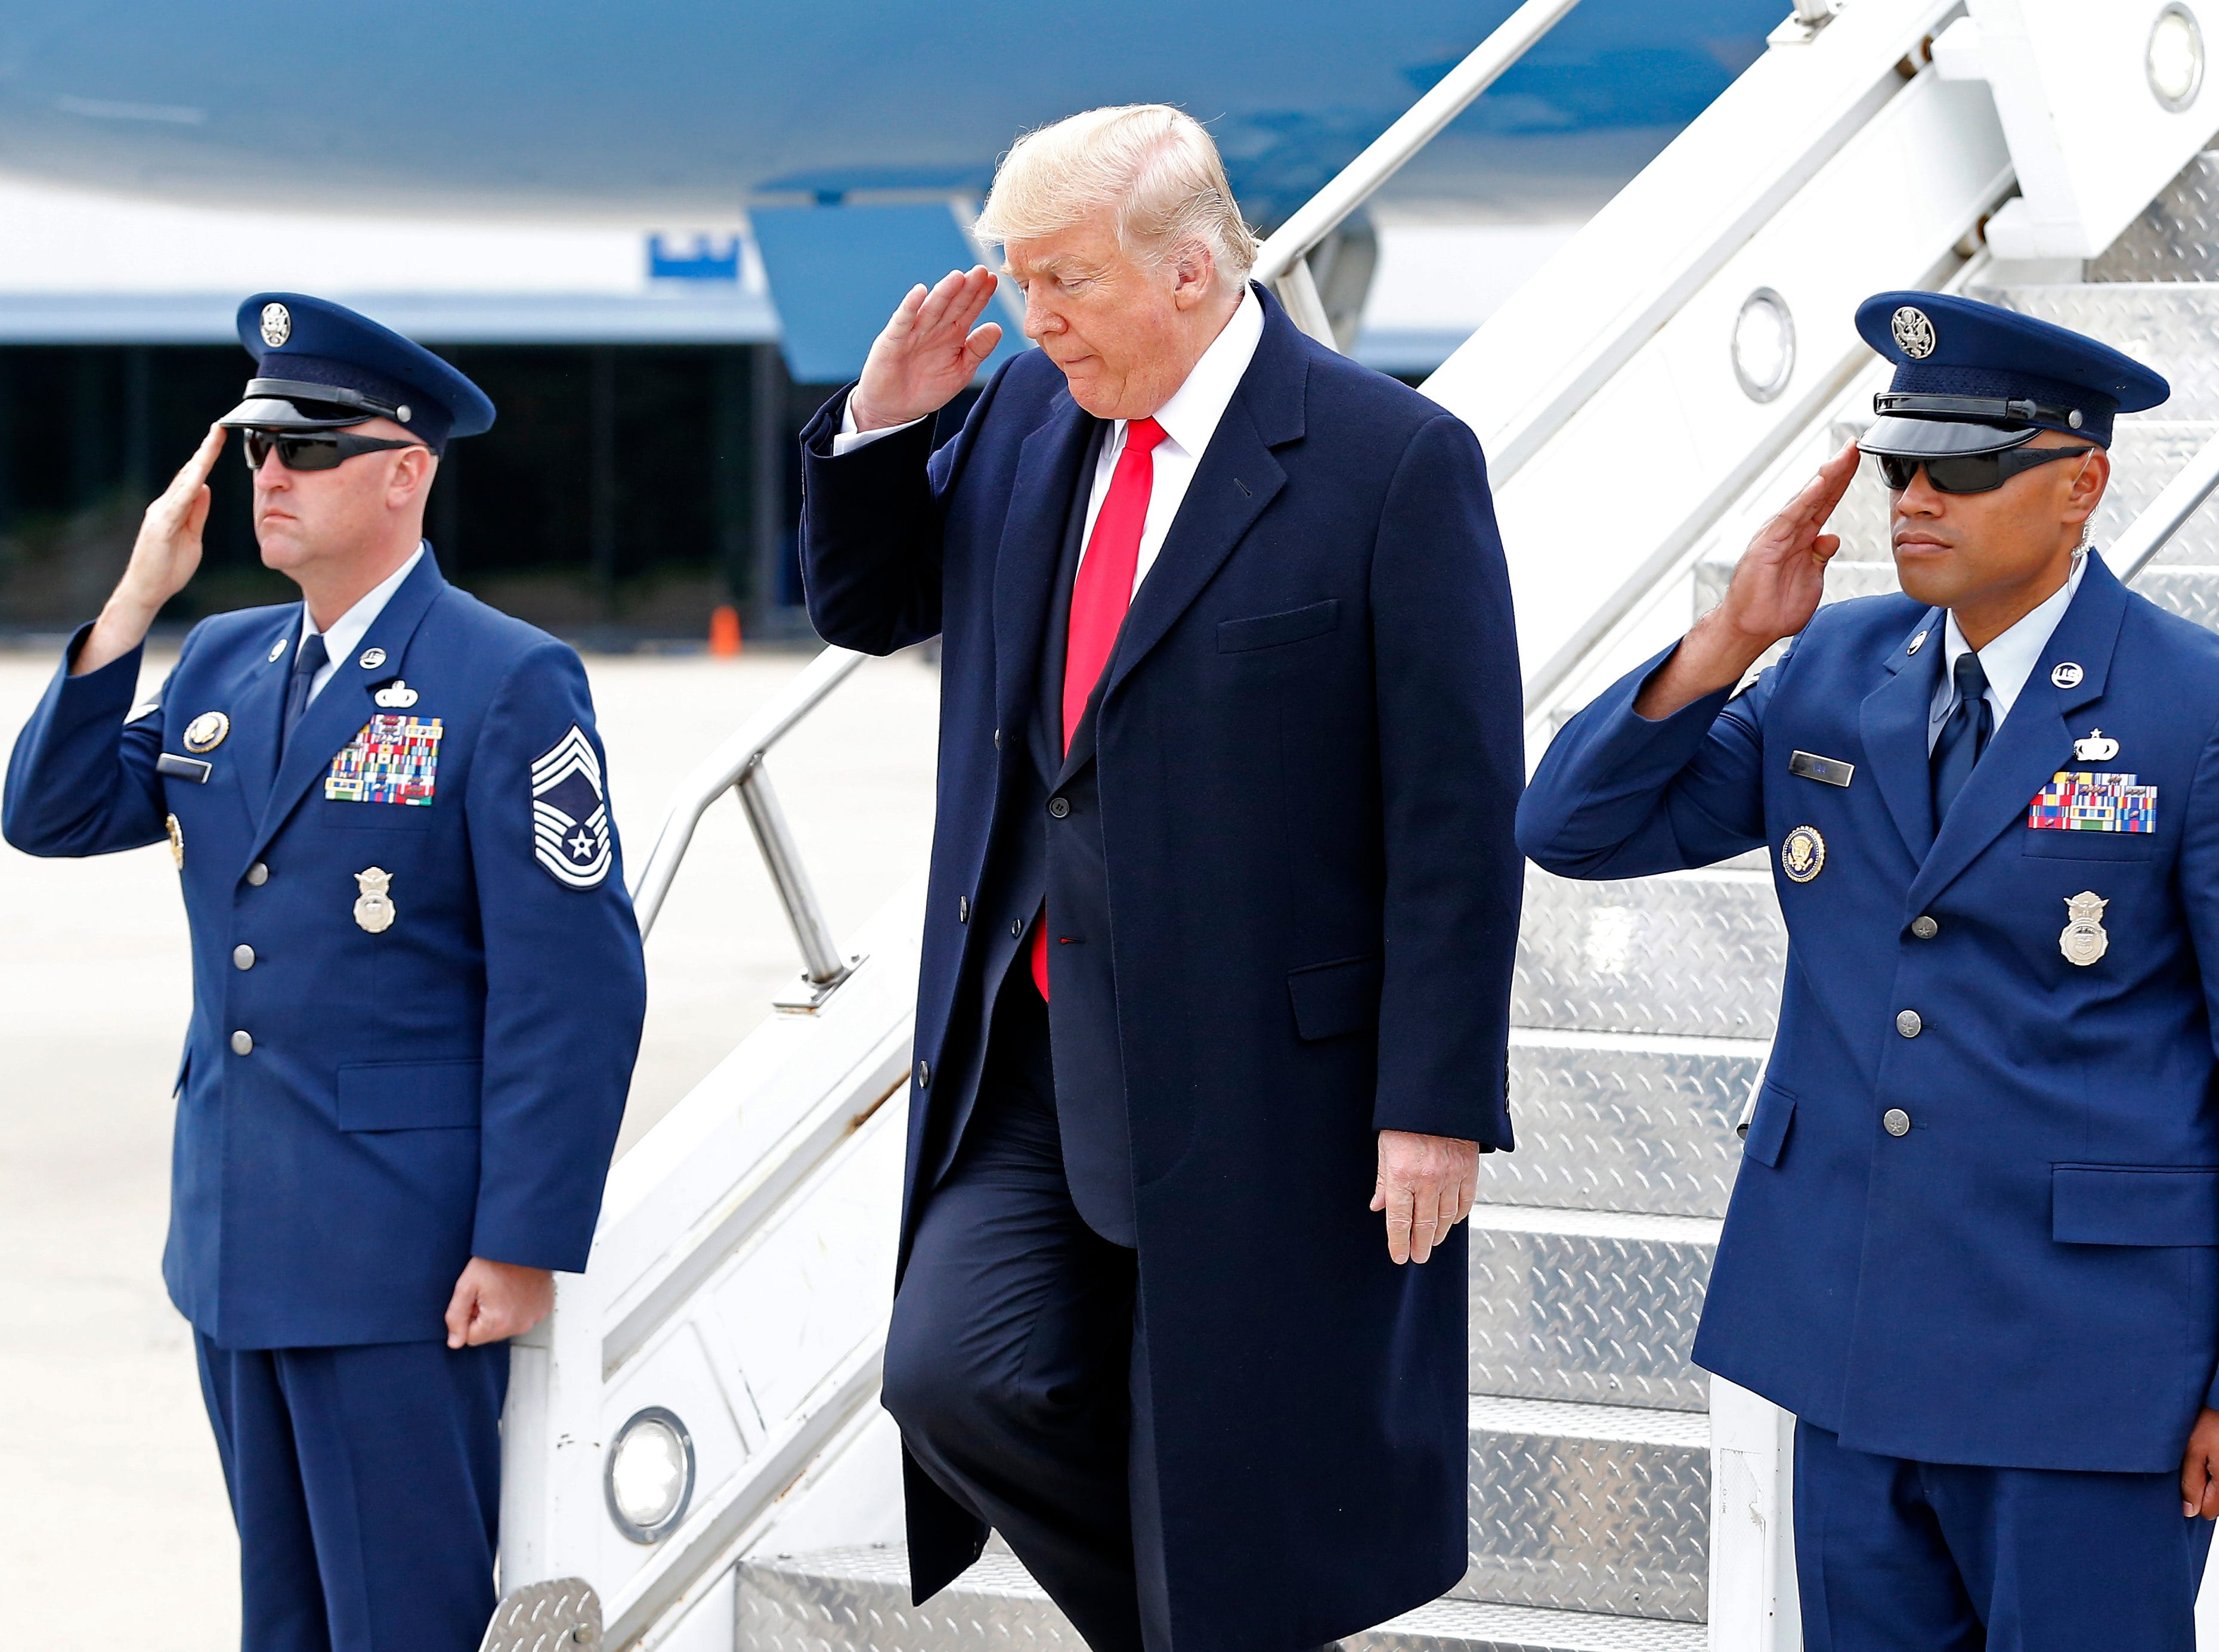 President Donald Trump salutes as he exits Air Force One after landing at Lunken Airport in Cincinnati on Friday, Oct. 12, 2018.